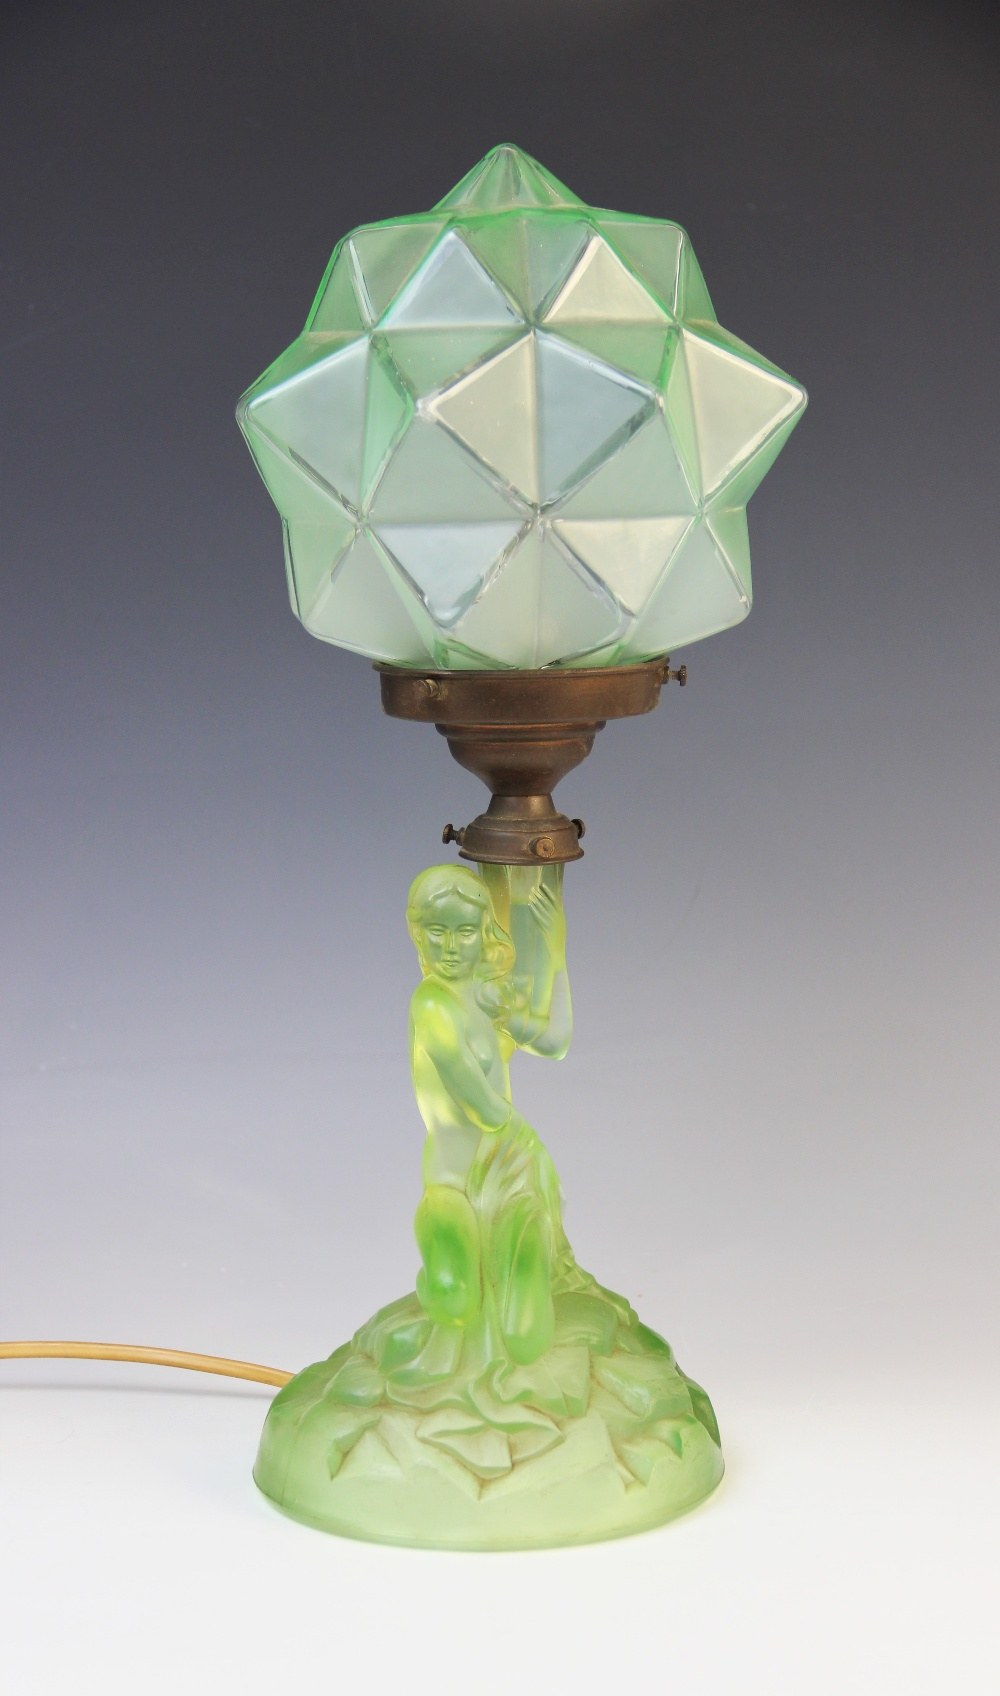 An Art Deco green glass table lamp by Walther & Sohne, early 20th century, modelled as a nymph on